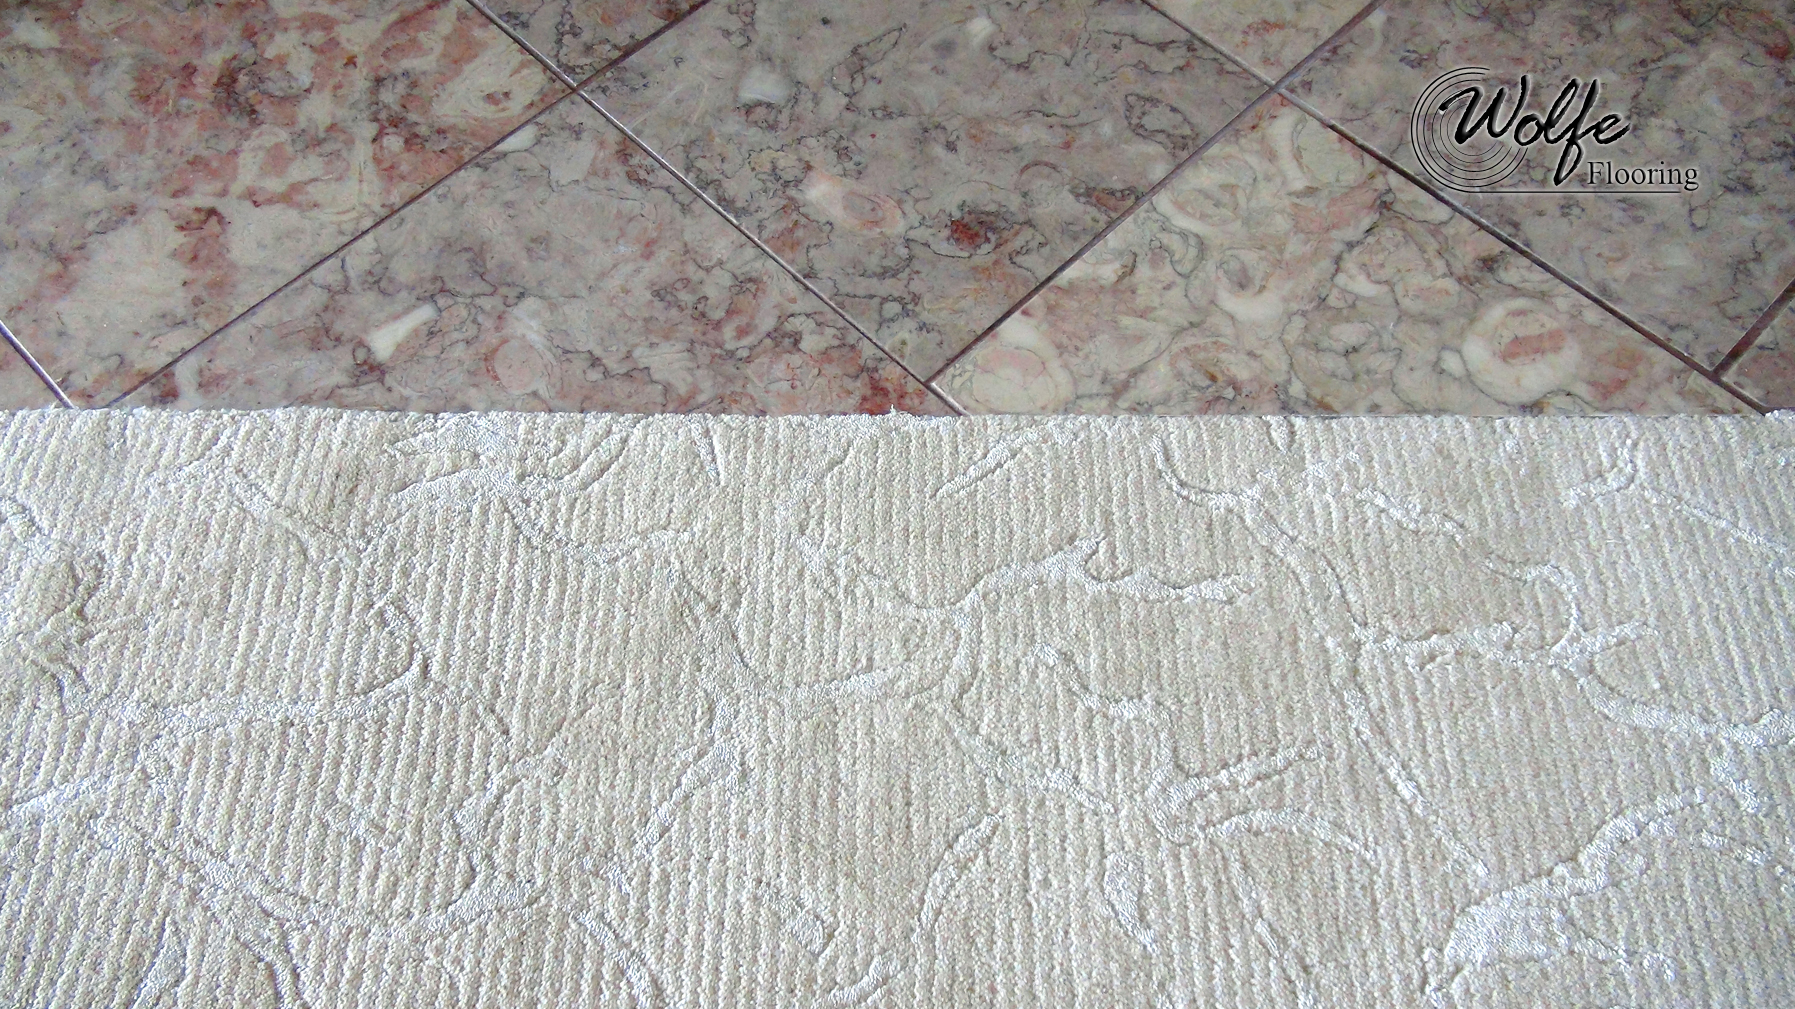 Portfolio wolfe flooring inc carpet inspired by nepal for south tampa baanklon Choice Image